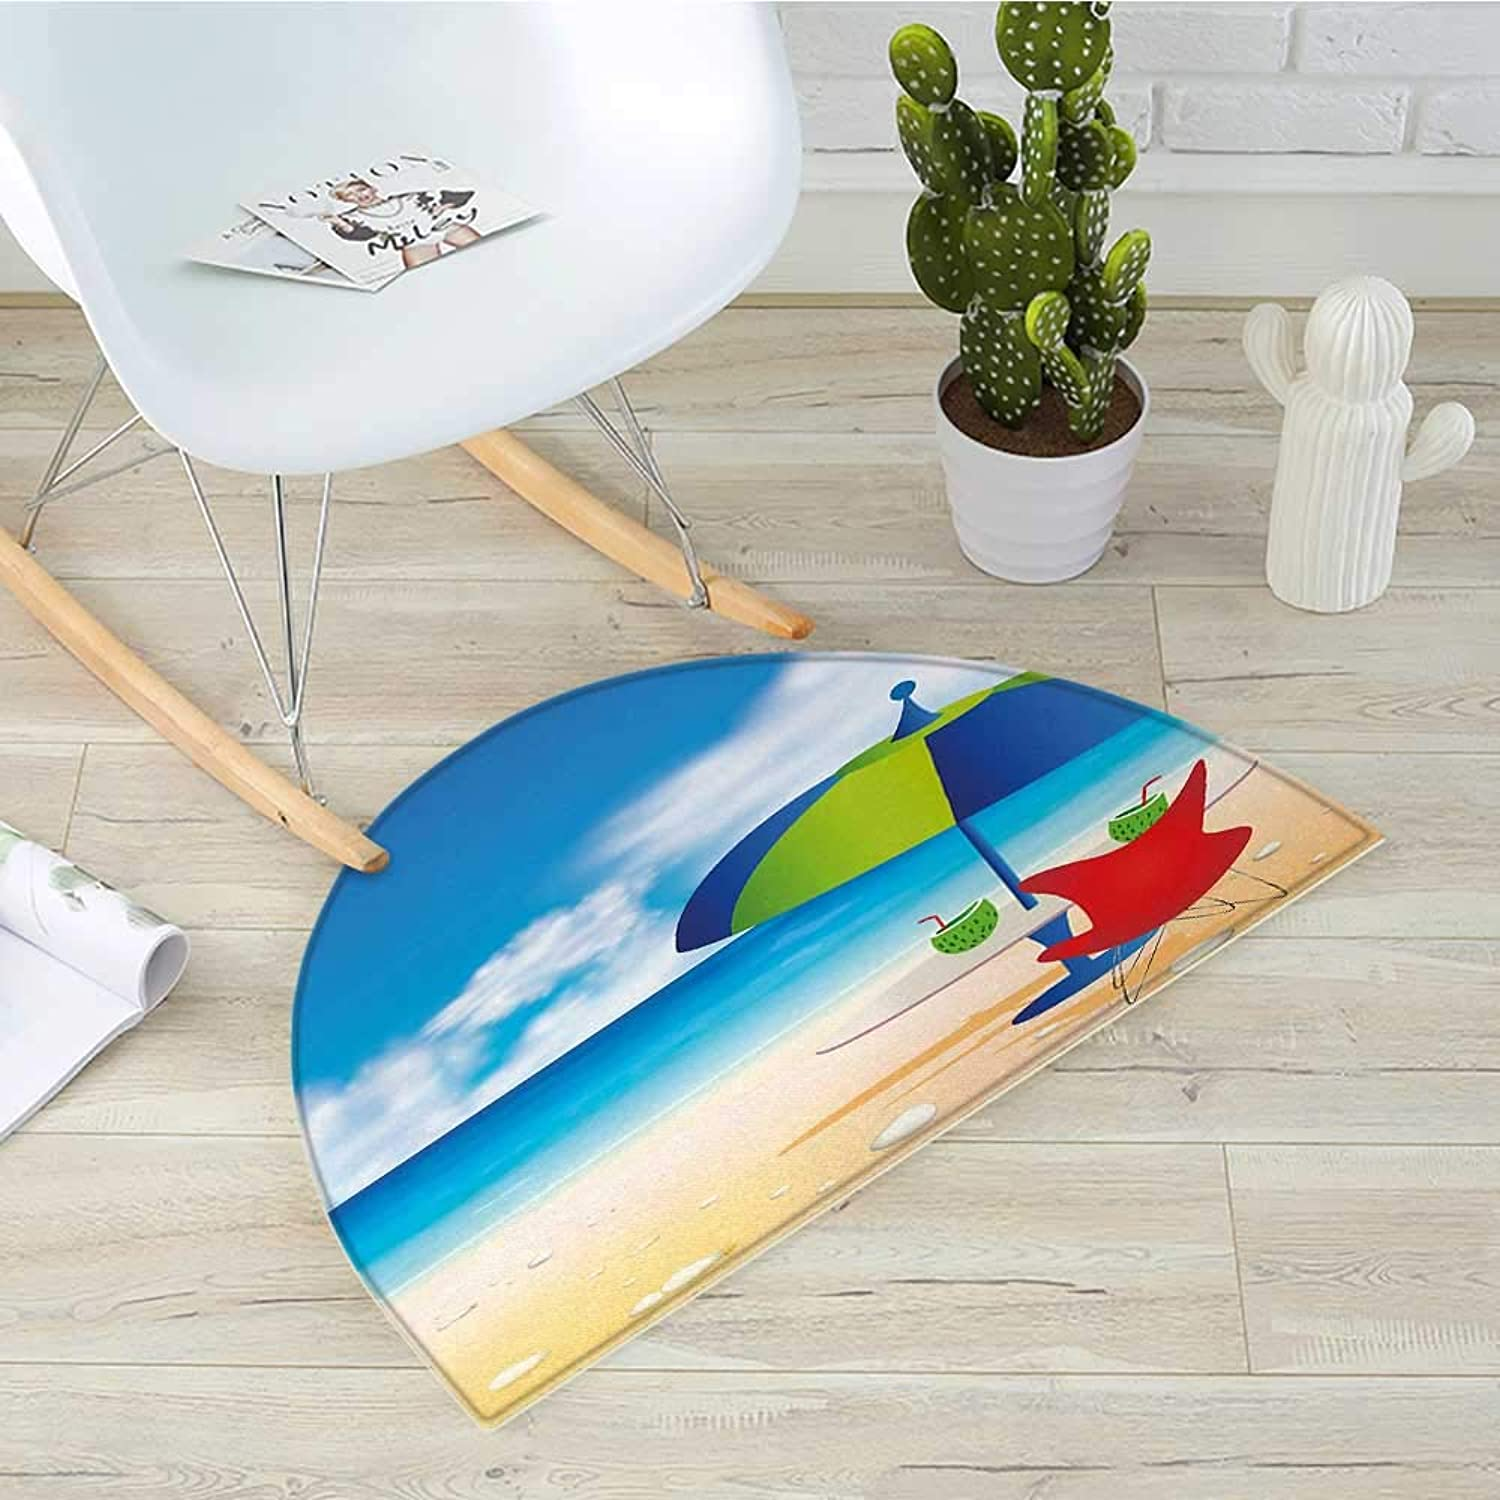 Beach Half Round Door mats Relaxing Scene with Umbrella and Drinks Open Skyline Holiday Destination Summer Time Bathroom Mat H 35.4  xD 53.1  Multicolor